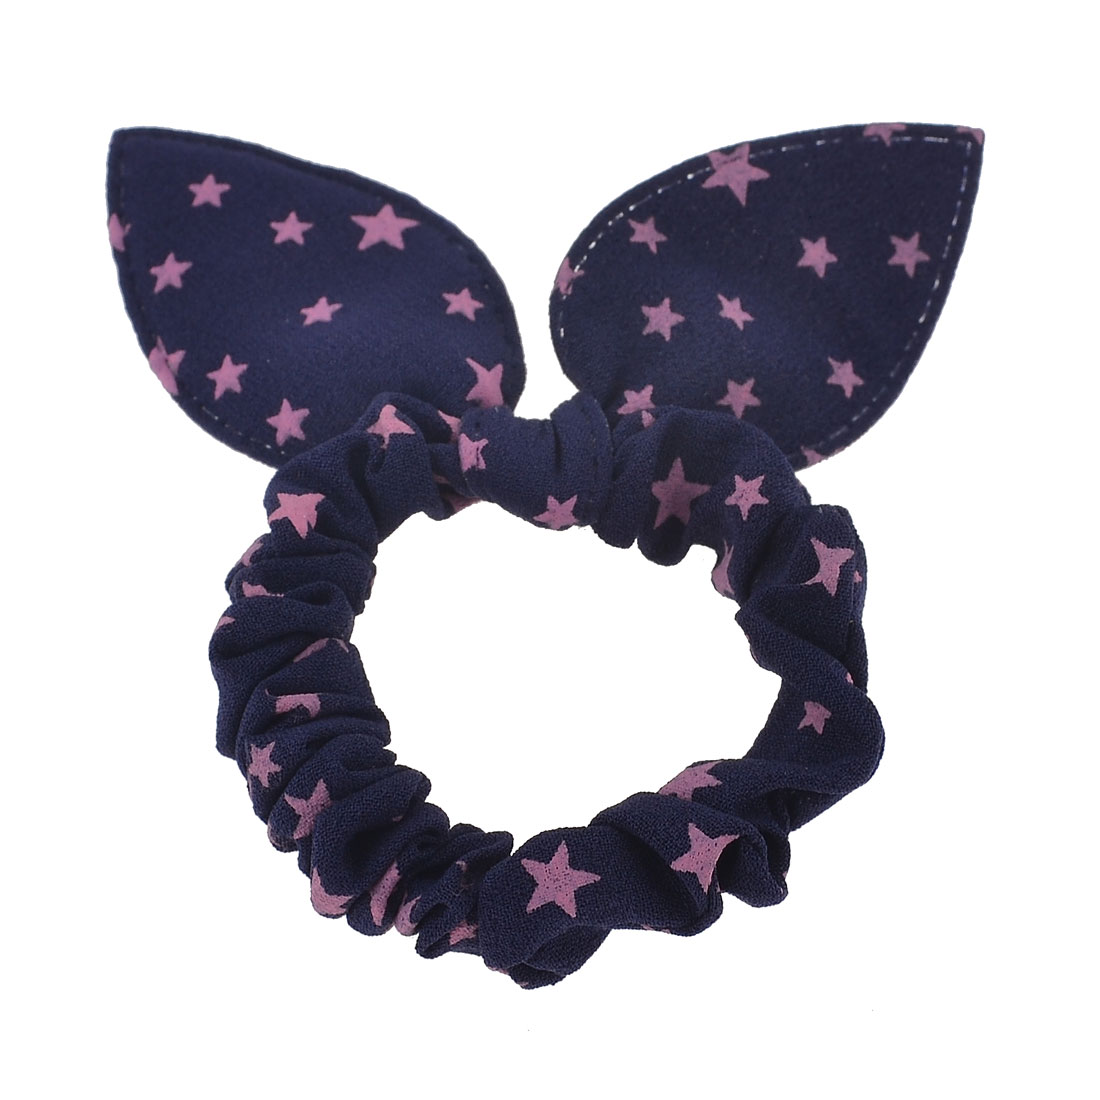 Rabbit Ear Shape Stretchy Band Hair Tie Ponytail Holder Navy Blue Pink for Women